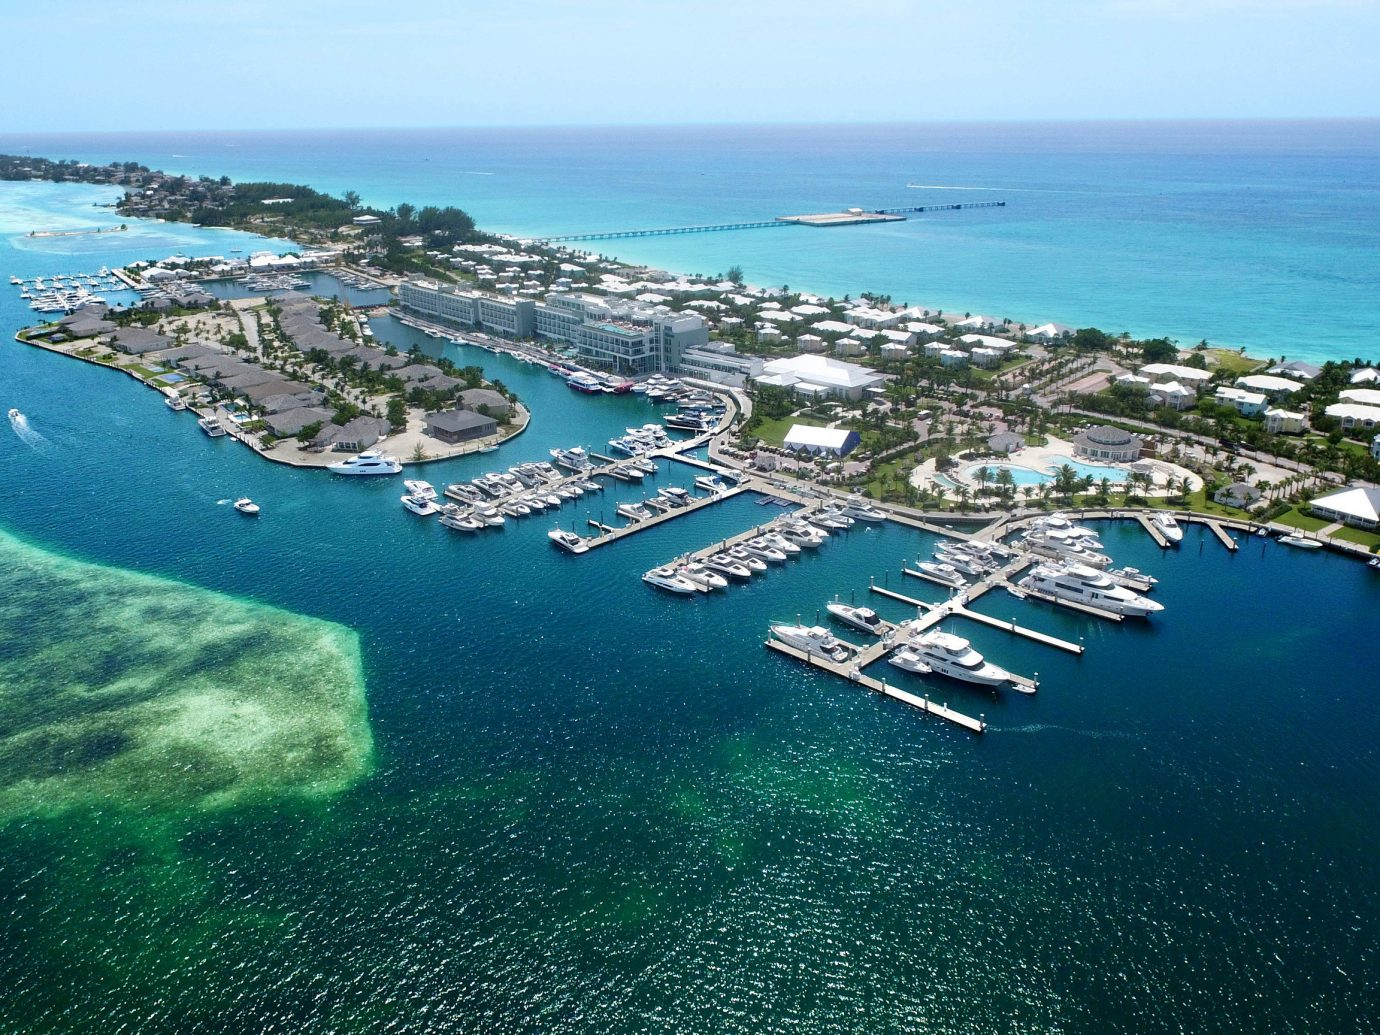 Hotels water sky Nature outdoor Ocean Coast Sea reef aerial photography marina horizon bay port dock channel cape shore caribbean archipelago islet promontory Island overlooking